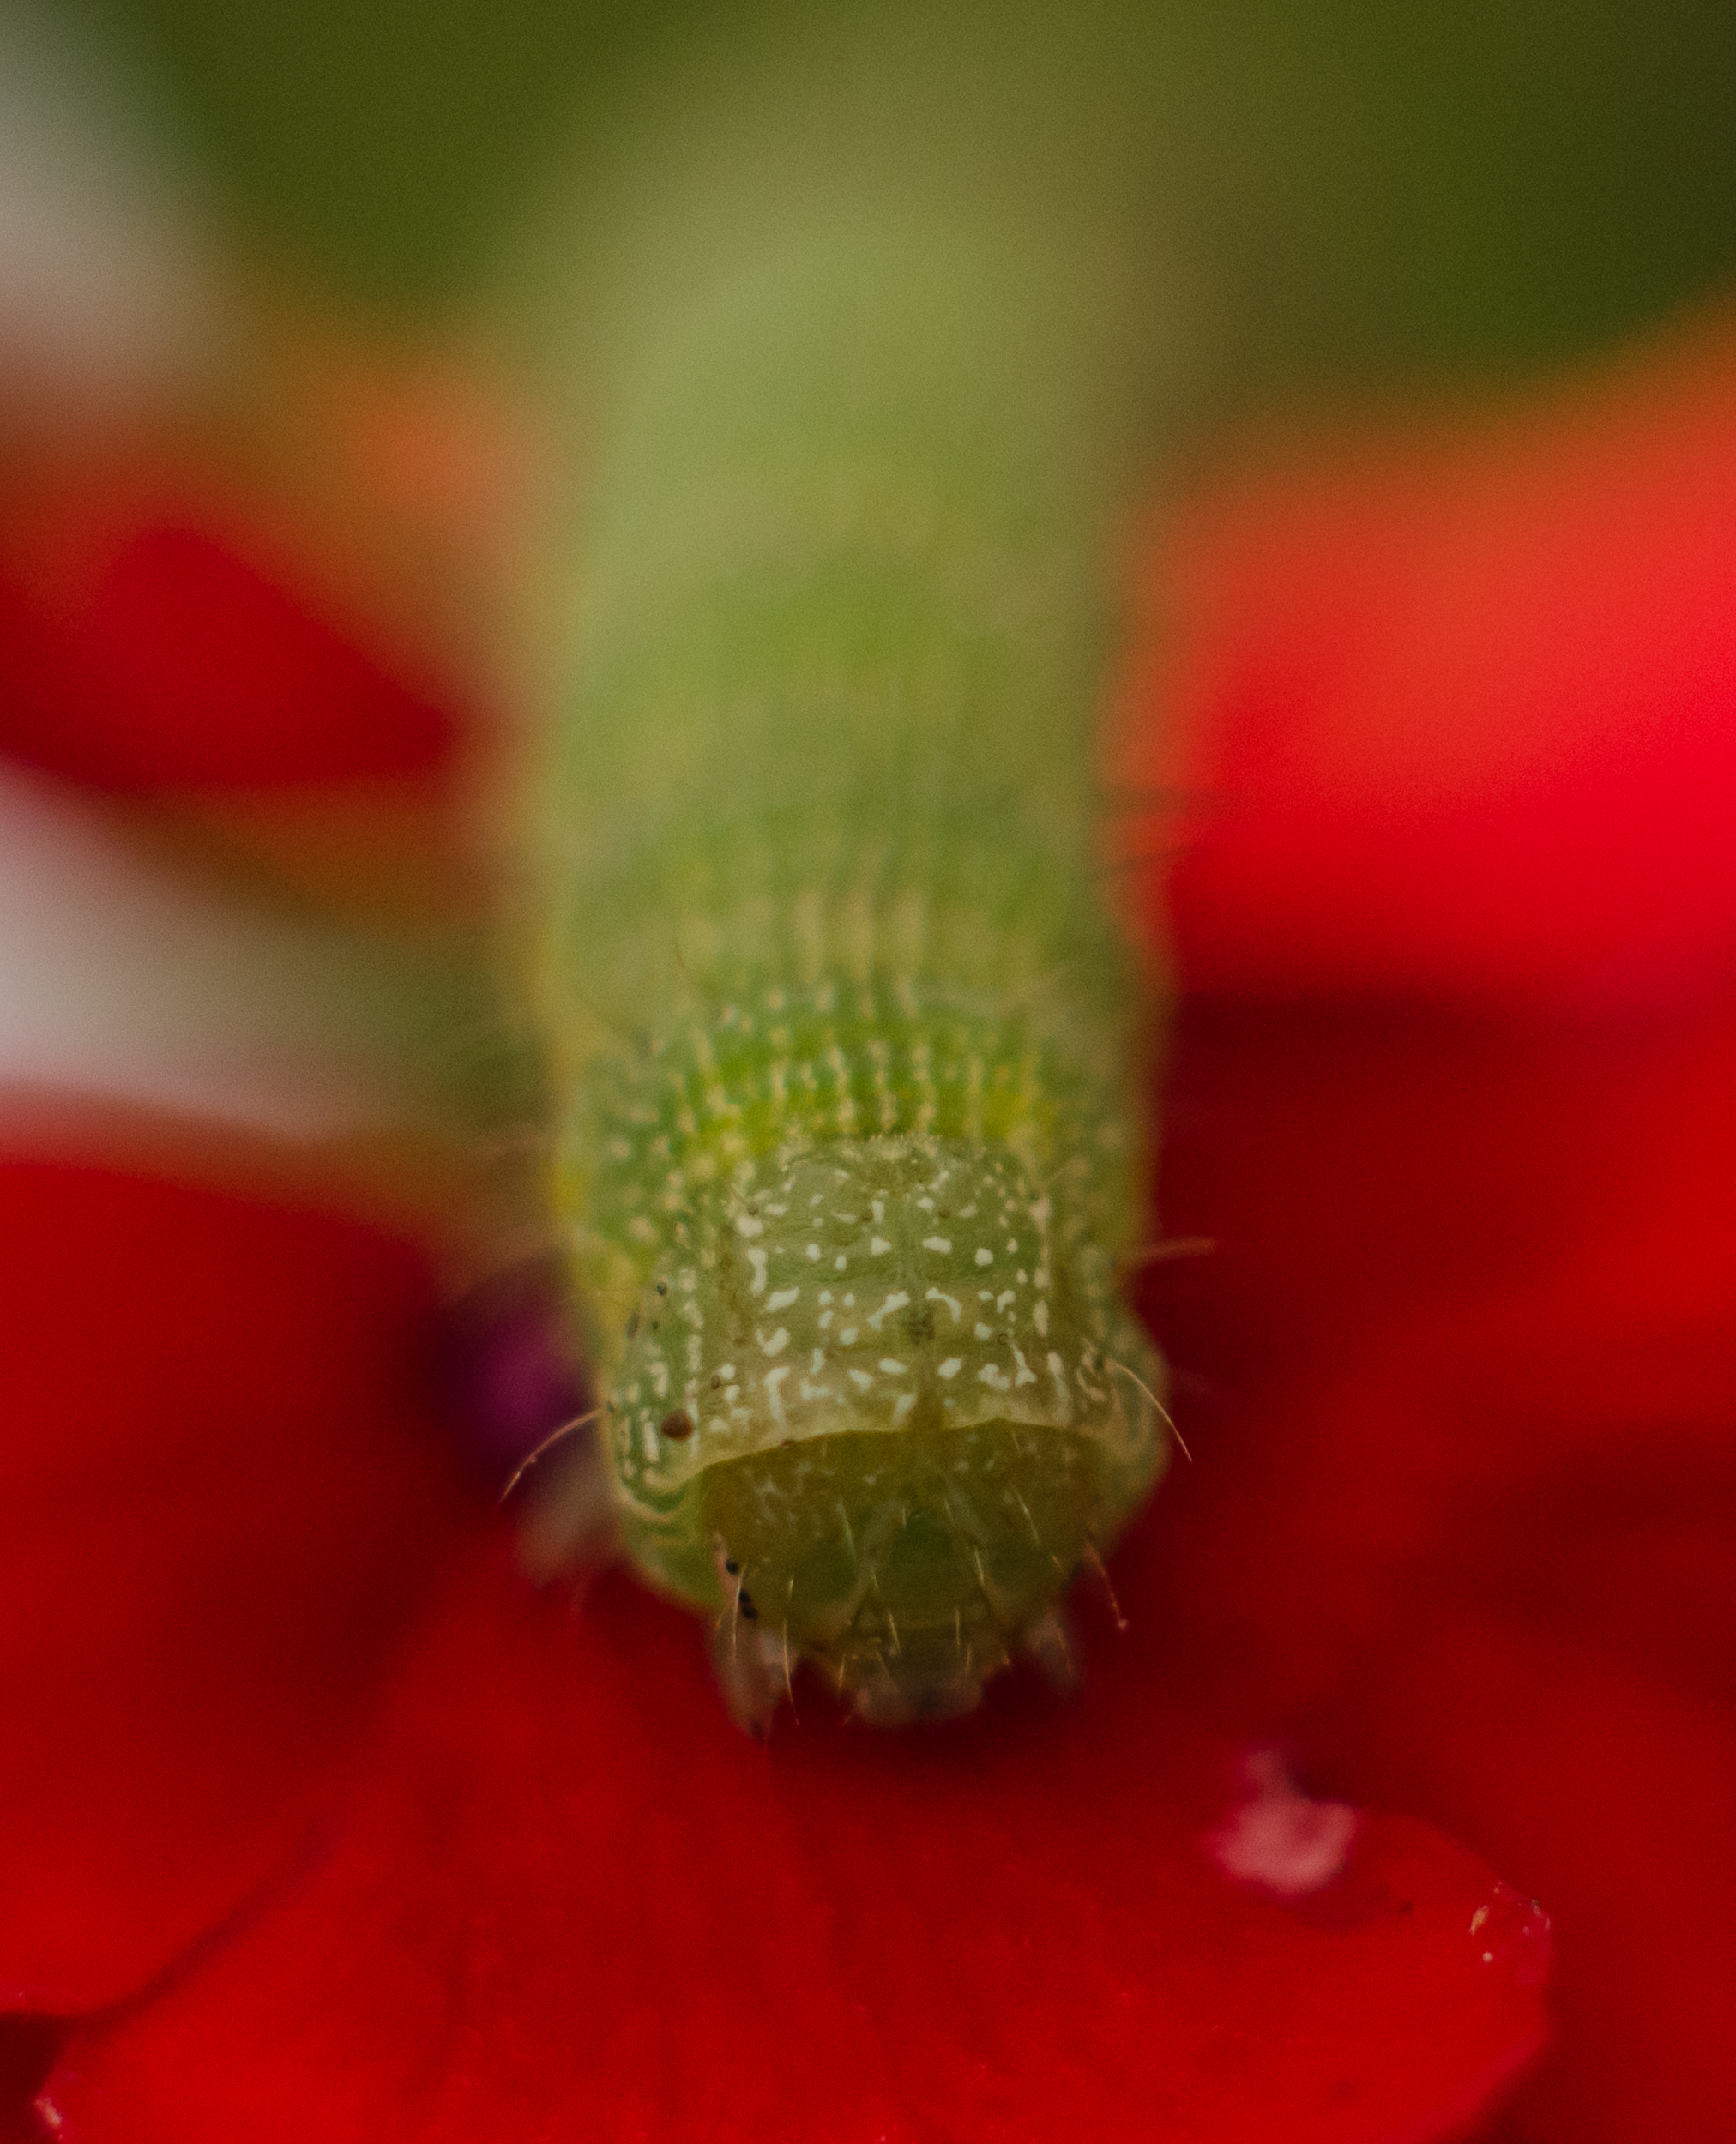 Caterpillar #2  Nikon D7000 ISO 400 50mm + 42mm extension f/22 1/2000 sec.